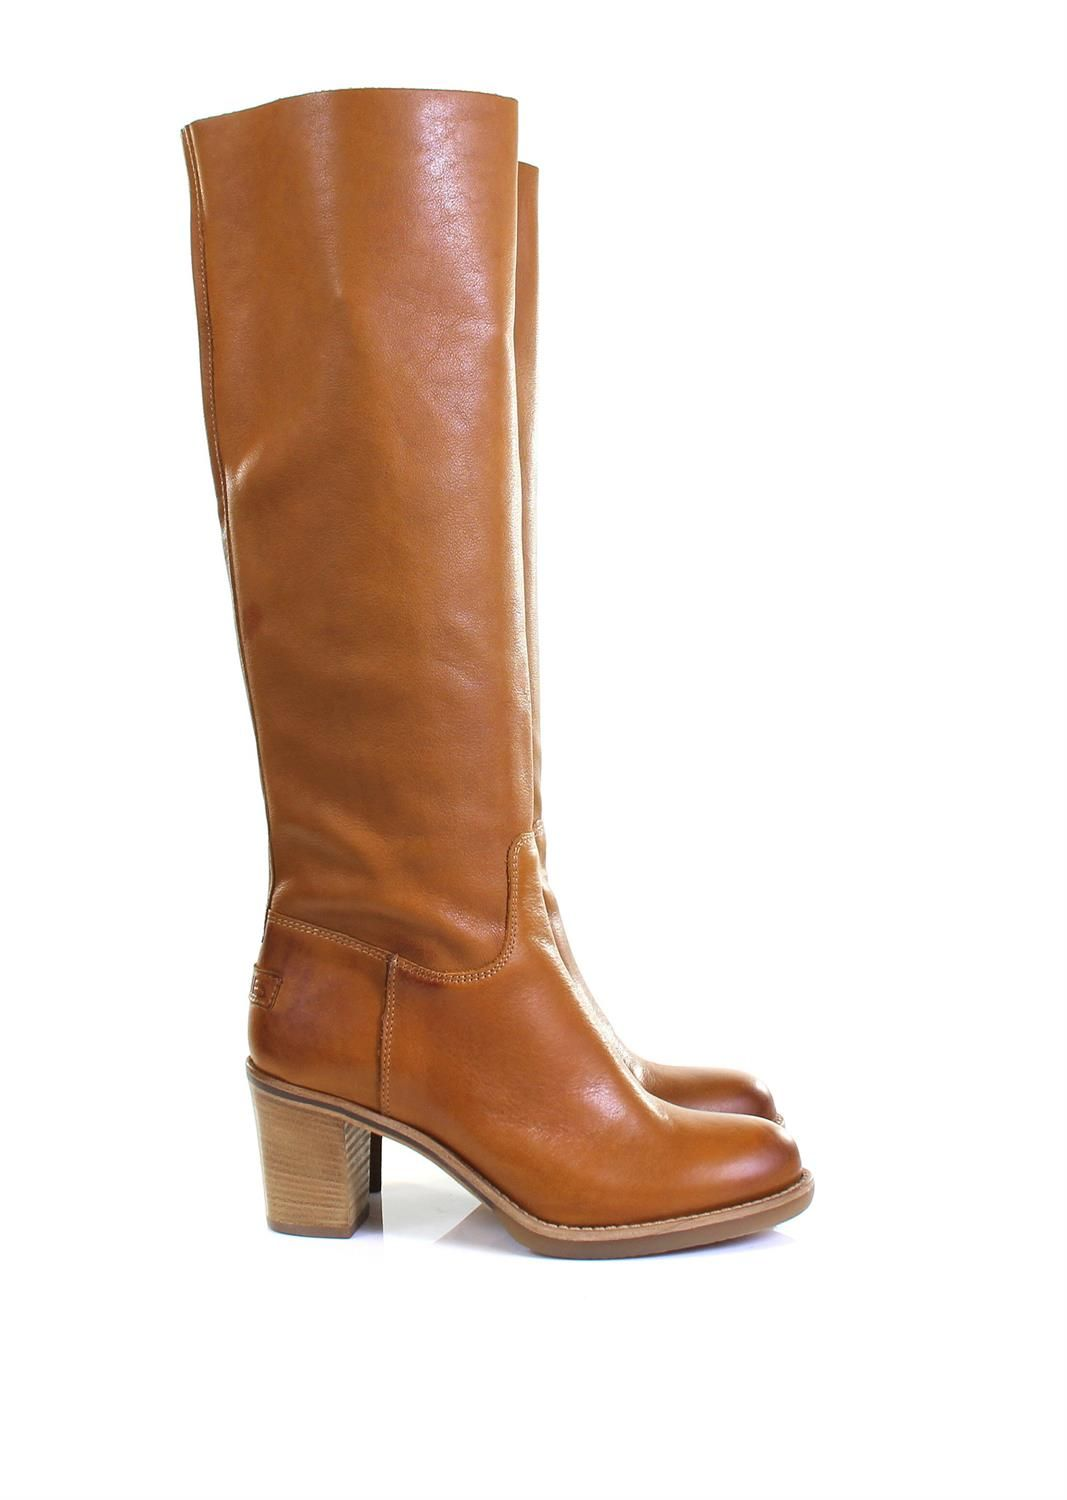 Shabbies Amsterdam Bottines cognac